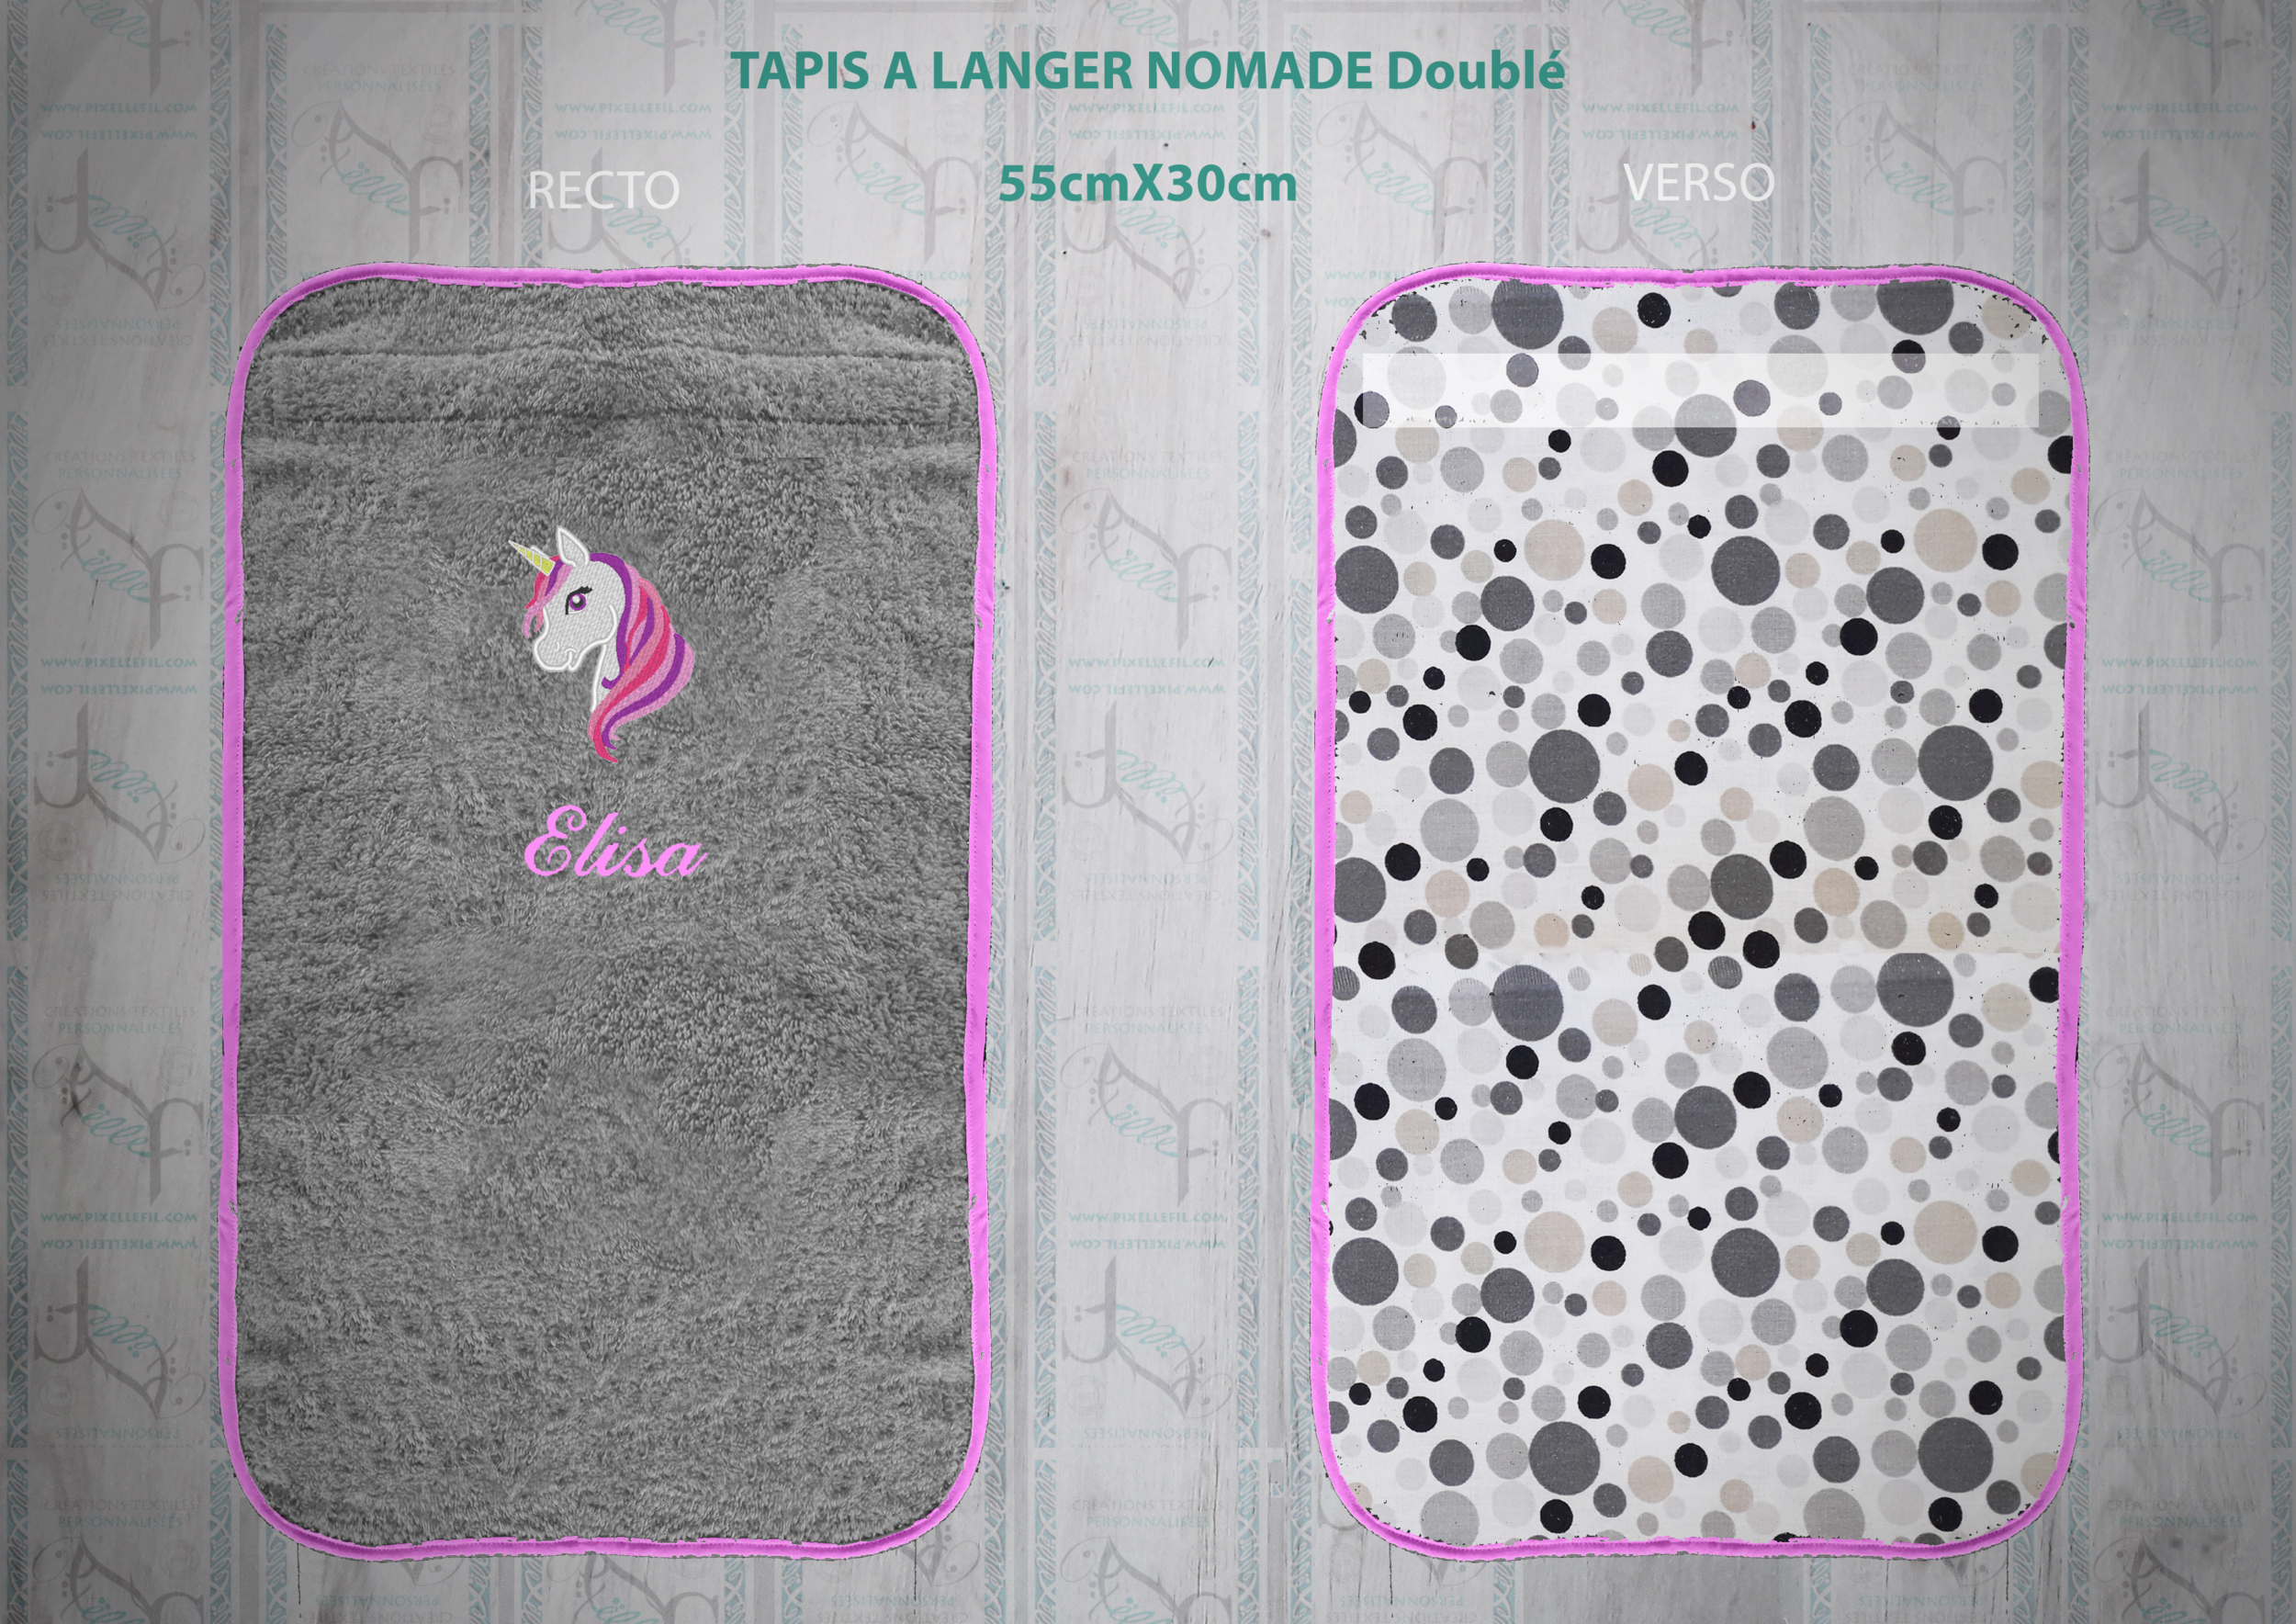 TAPIS A LANGER Nomade Doublé